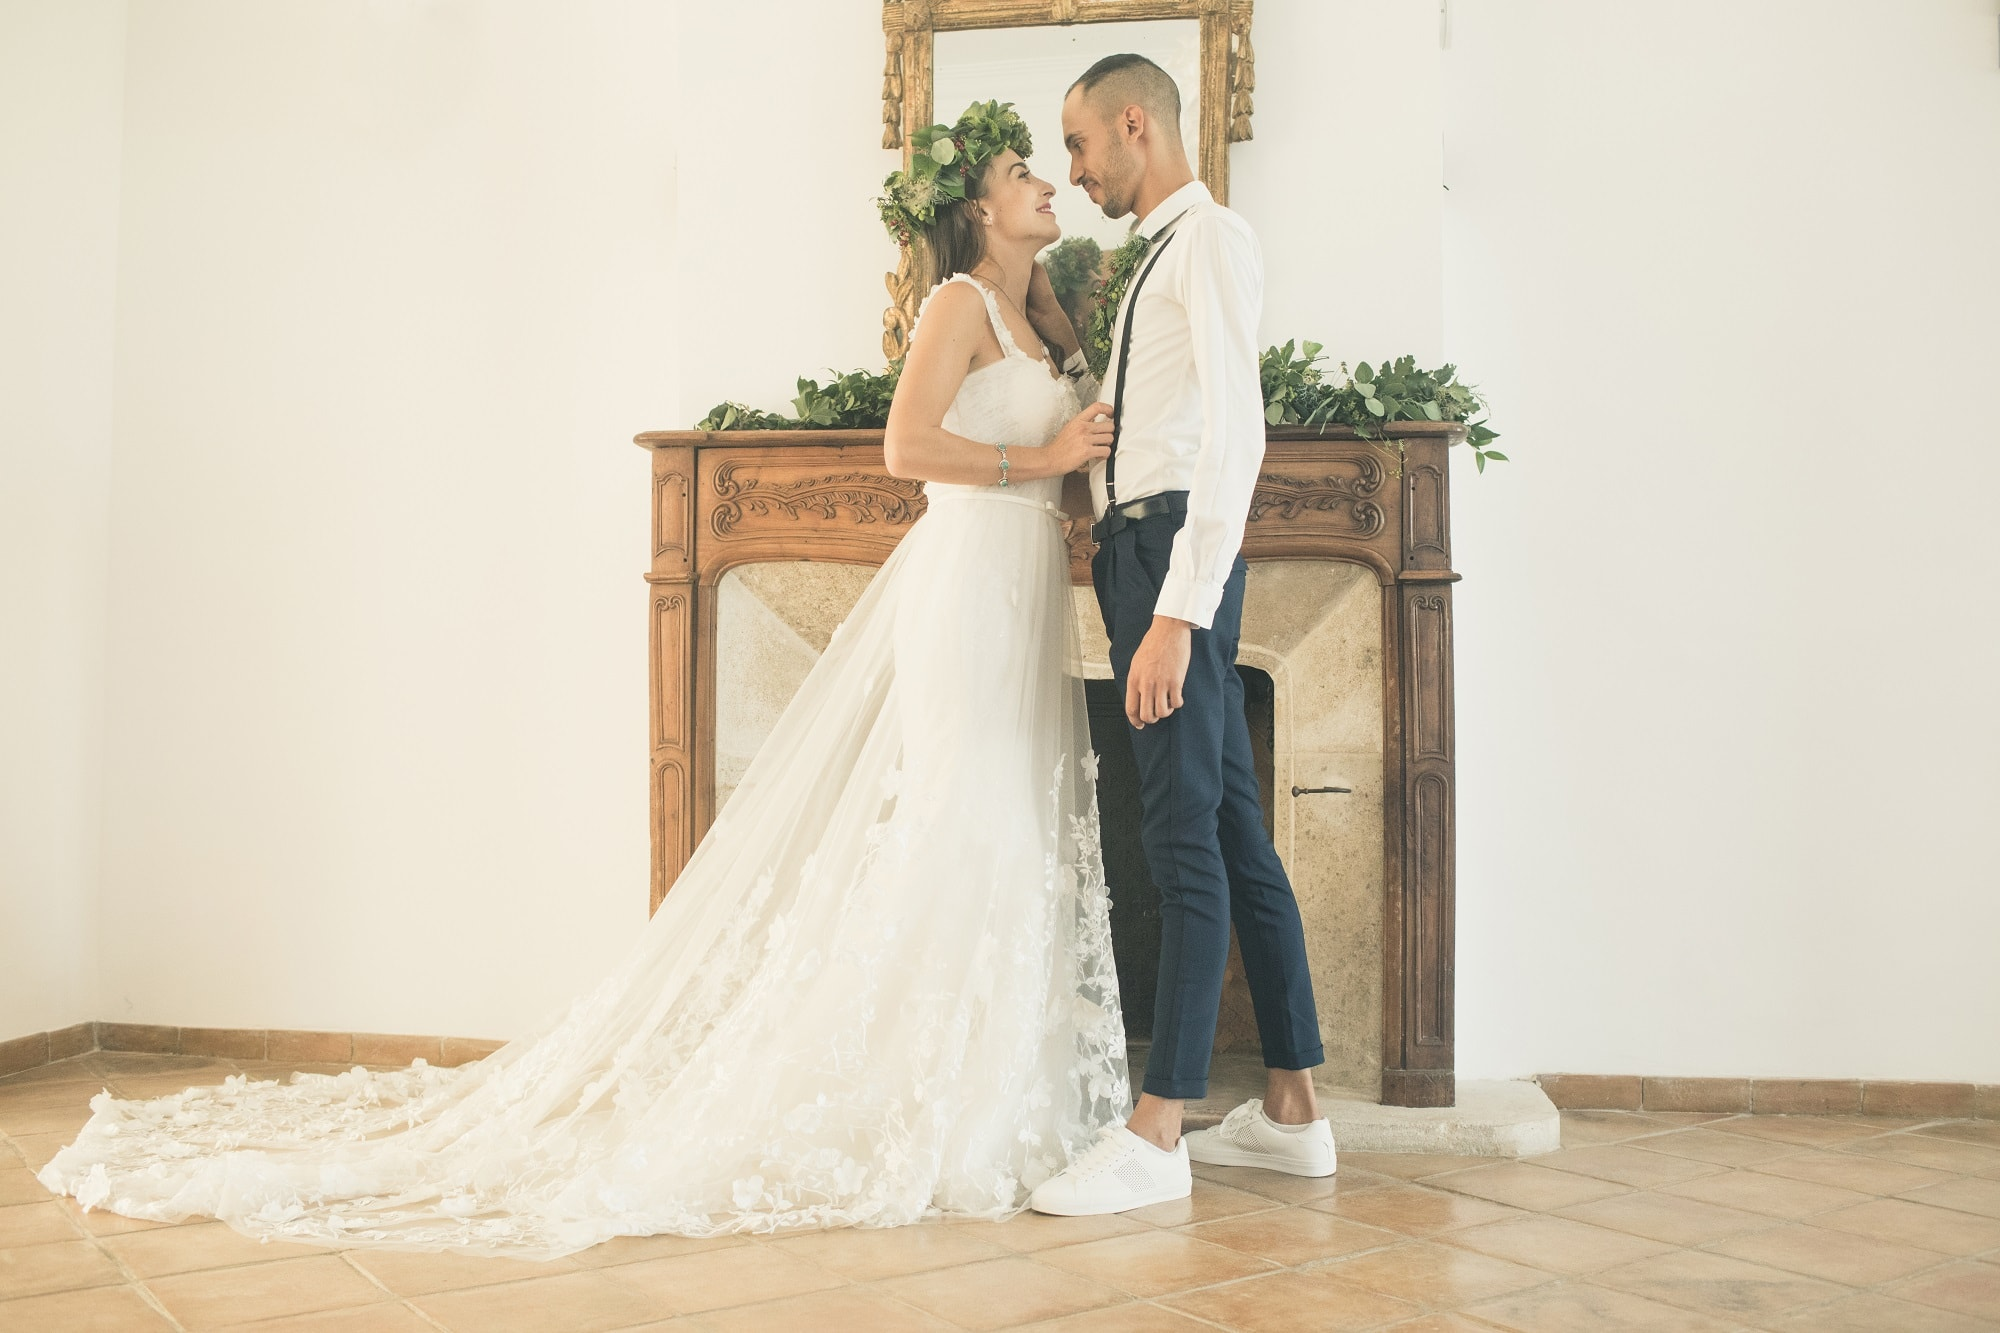 19-mariages-min